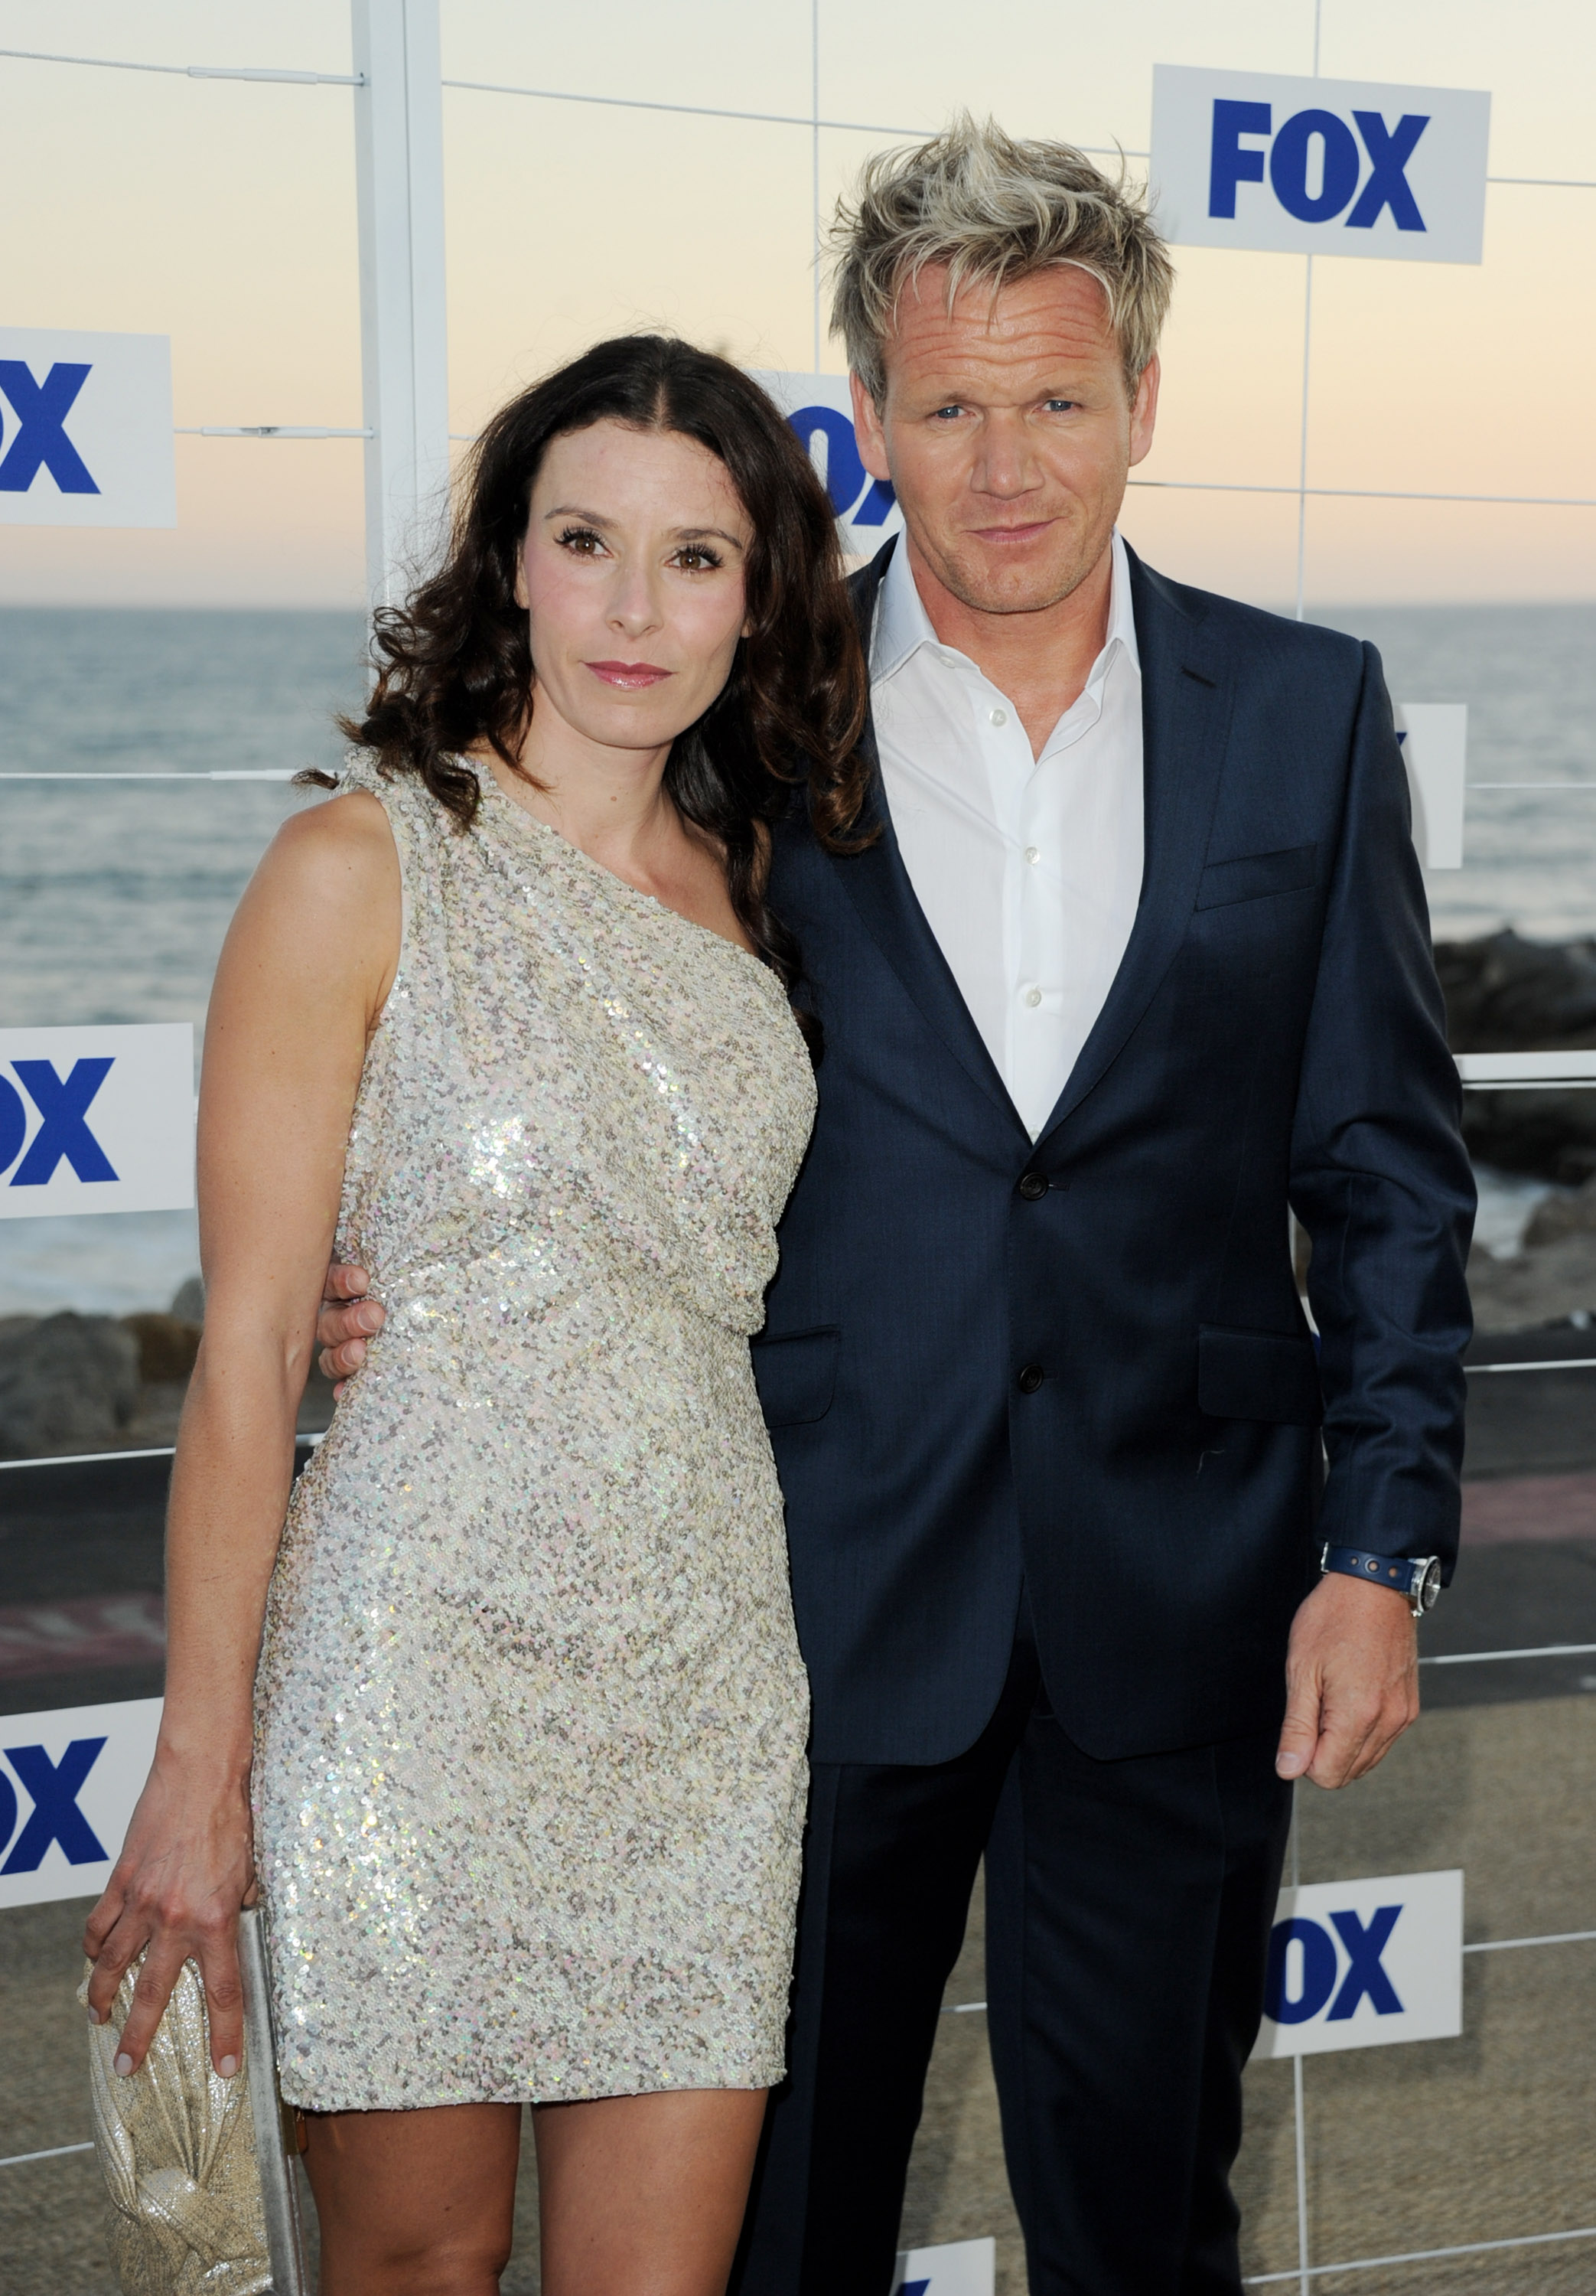 Masterchef Gordon Ramsay and his wife Tana arrive at the FOX All-Star party at Gladstones on August 5, 2011 in Pacific Palisades, California. (Photo by Kevin Winter/Getty Images)